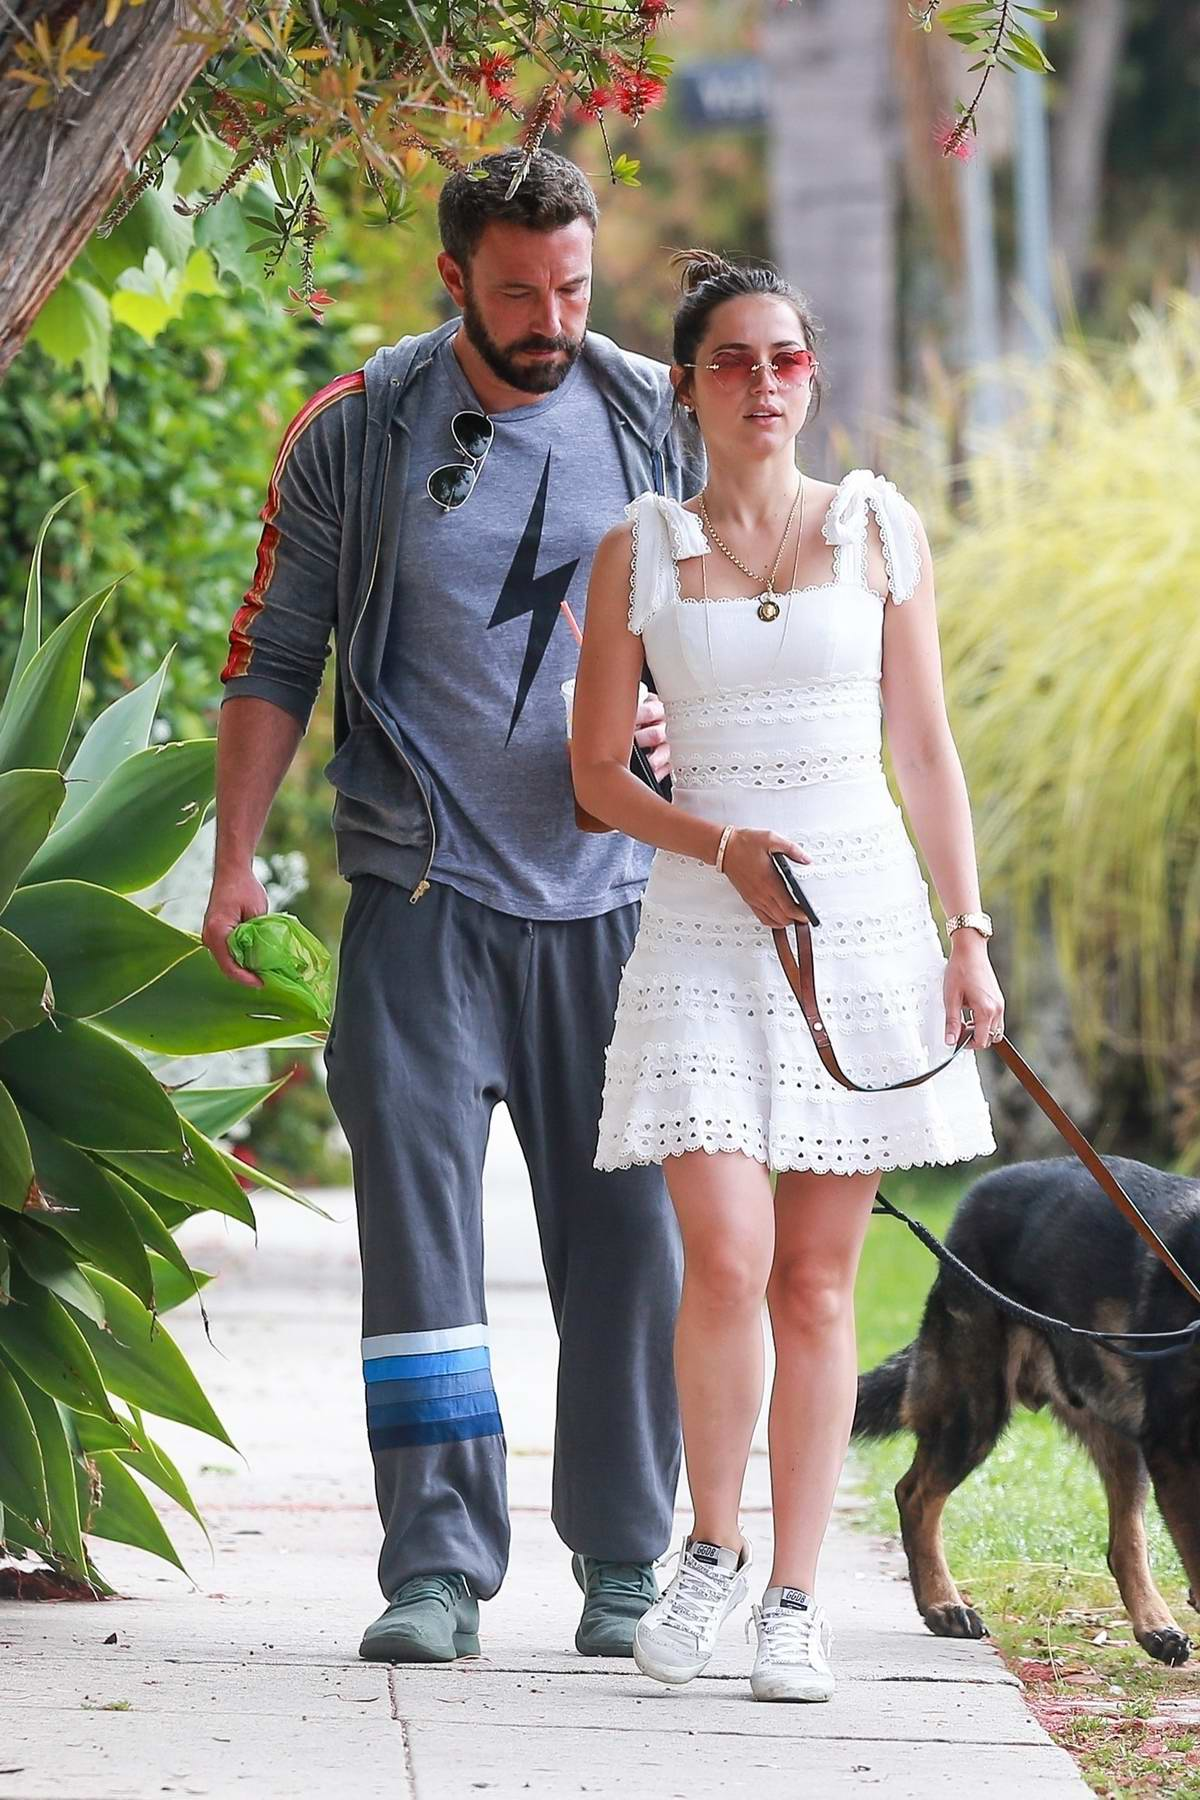 Ana de Armas looks cute in a white mini dress and rose-colored sunglasses while out for a stroll with Ben Affleck in Venice, California